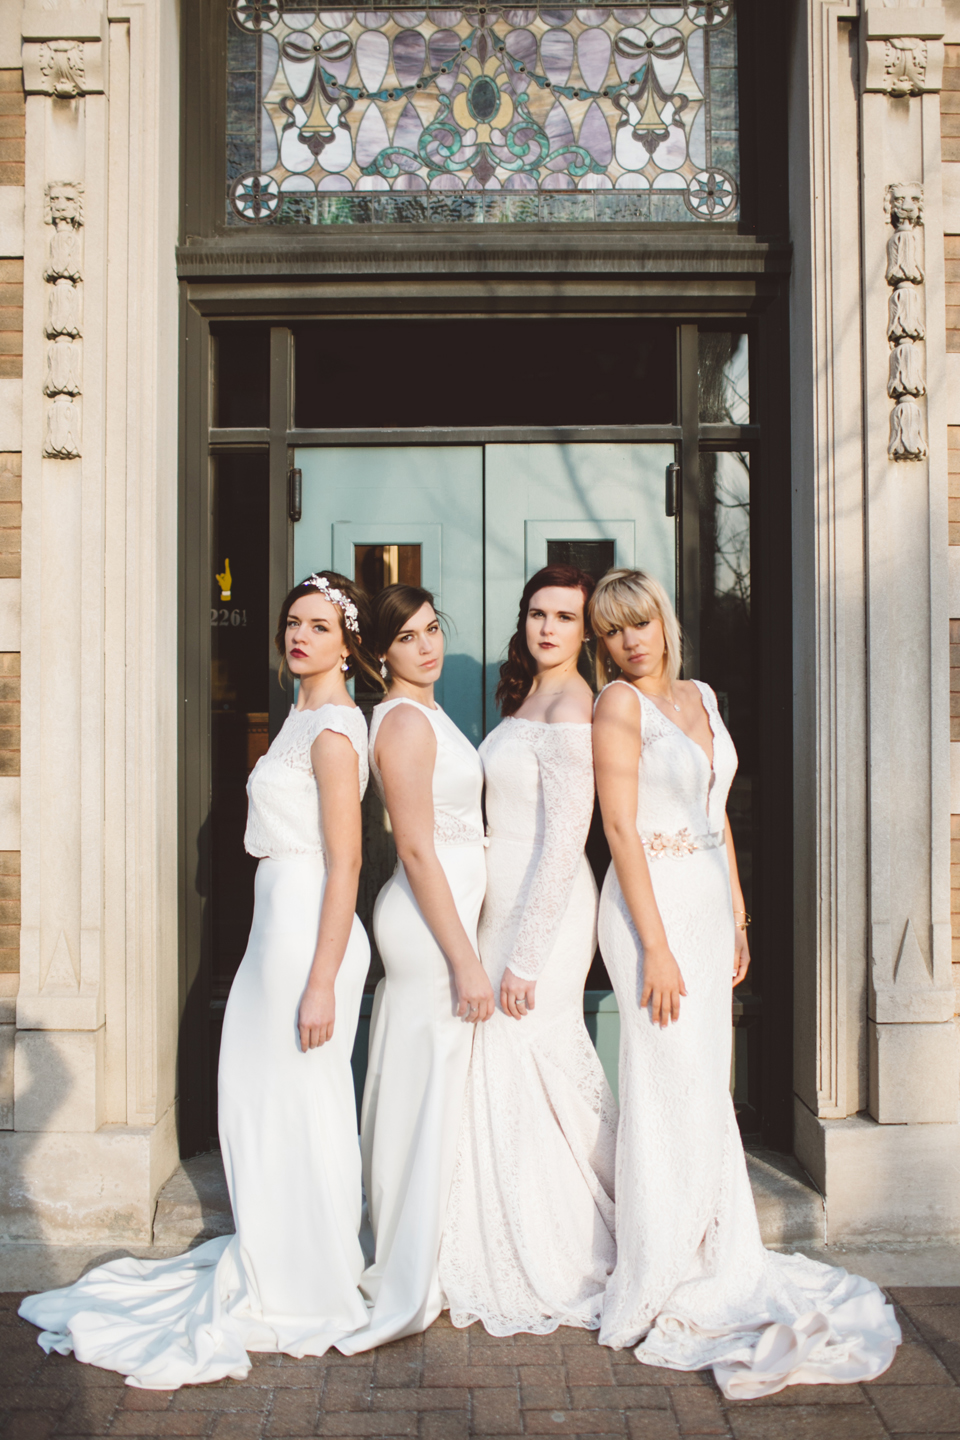 Blog Post: An Elegant Affair Bridal